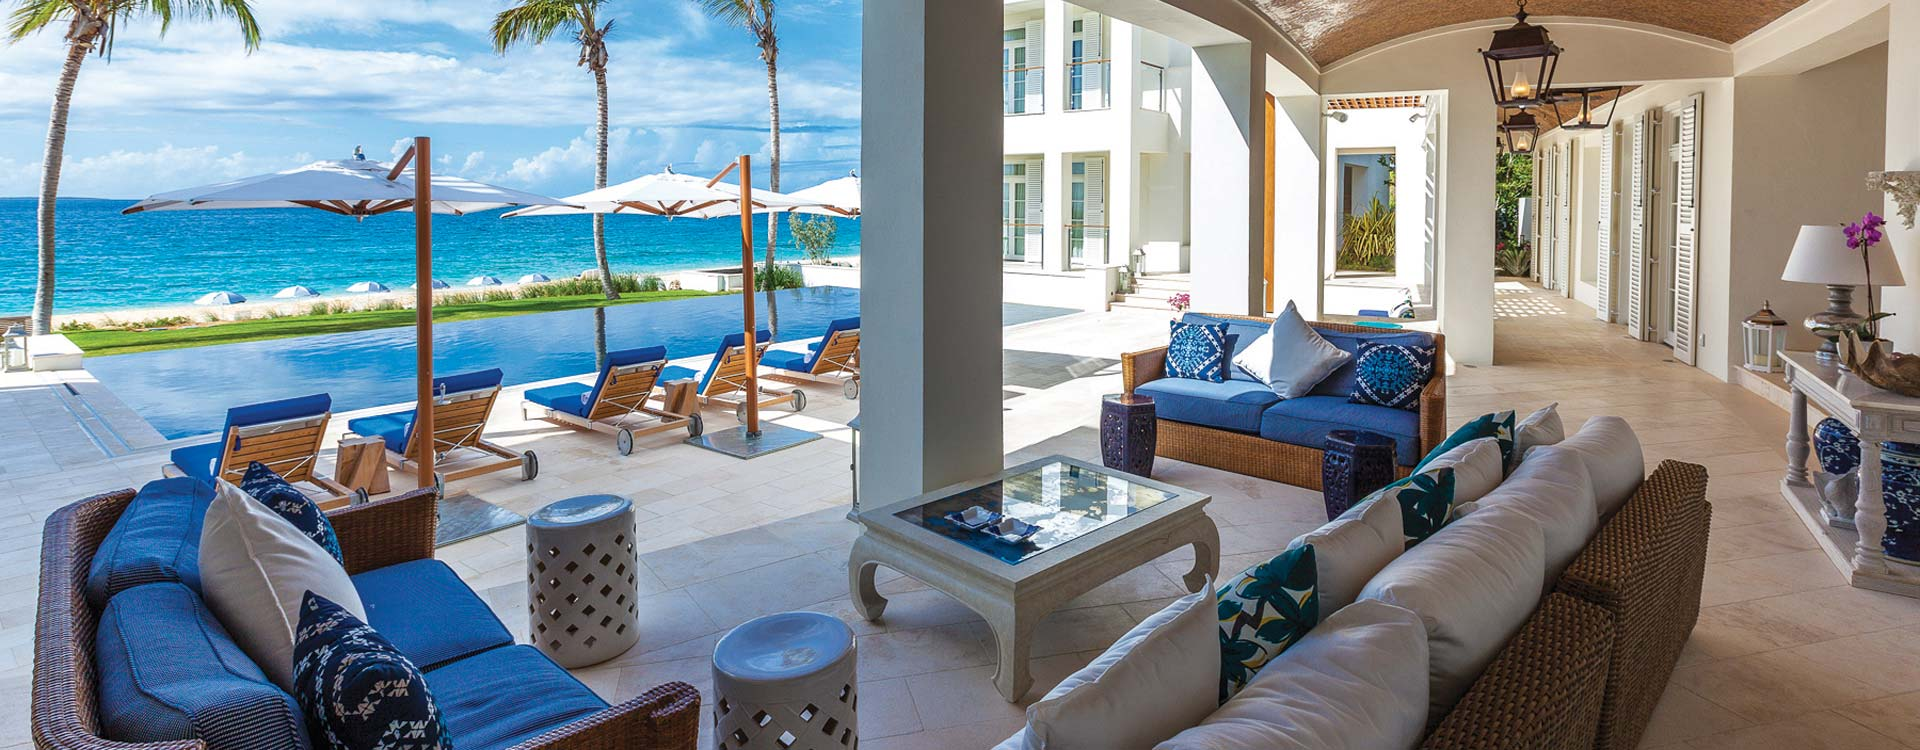 Indoor/Outdoor living at Cerulean Villa, Anguilla